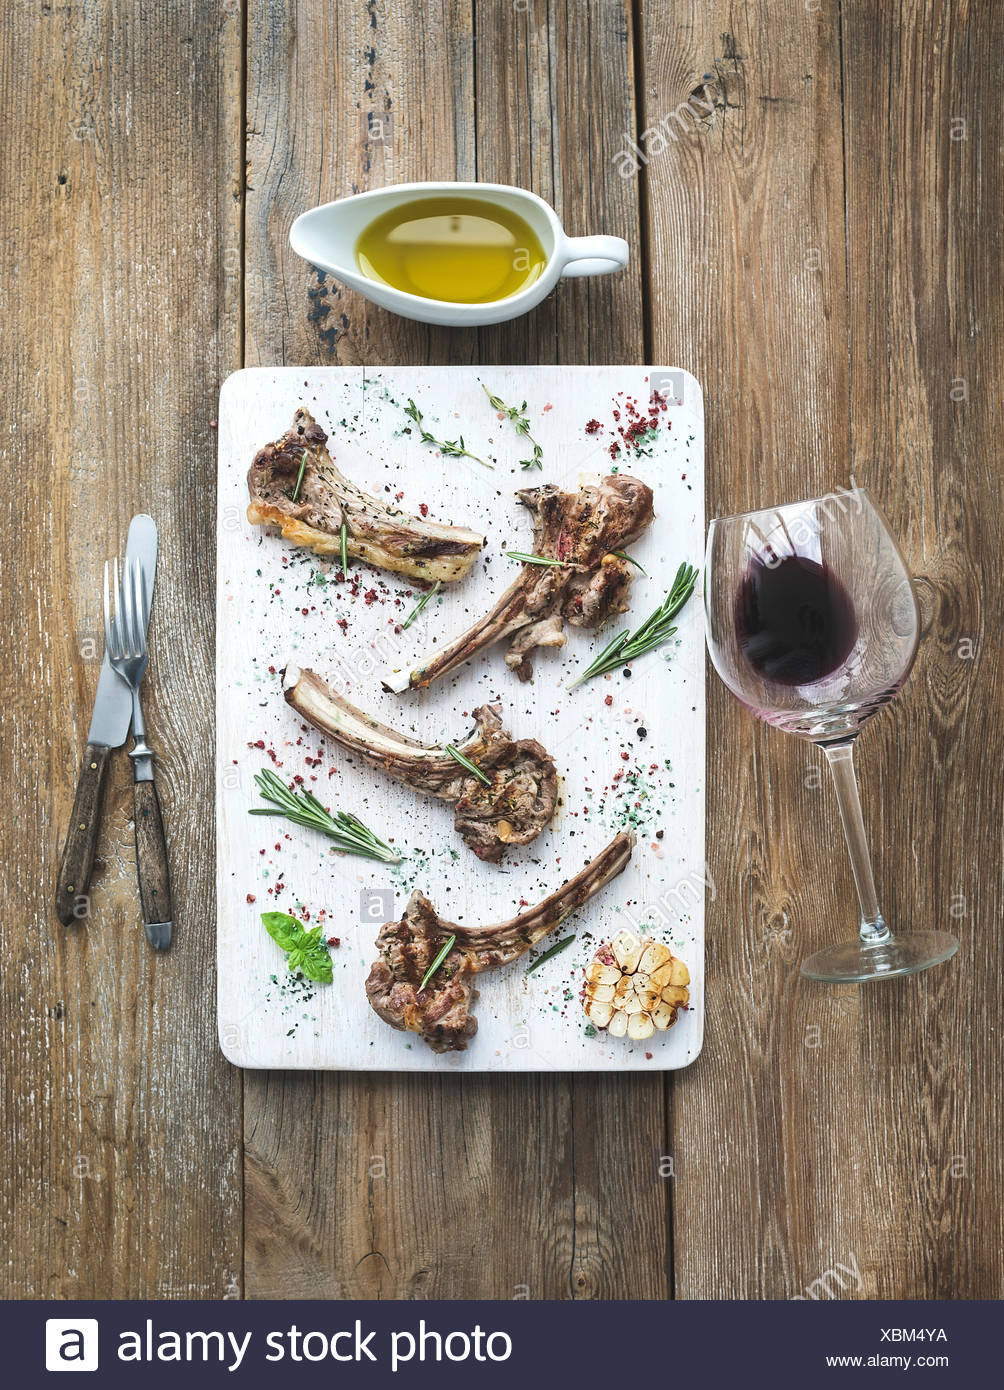 Grilled lamb chops. Rack of Lamb with garlic, rosemary and spices on white serving board, wine glass, oil in a saucer, dinnerwar - Stock Image